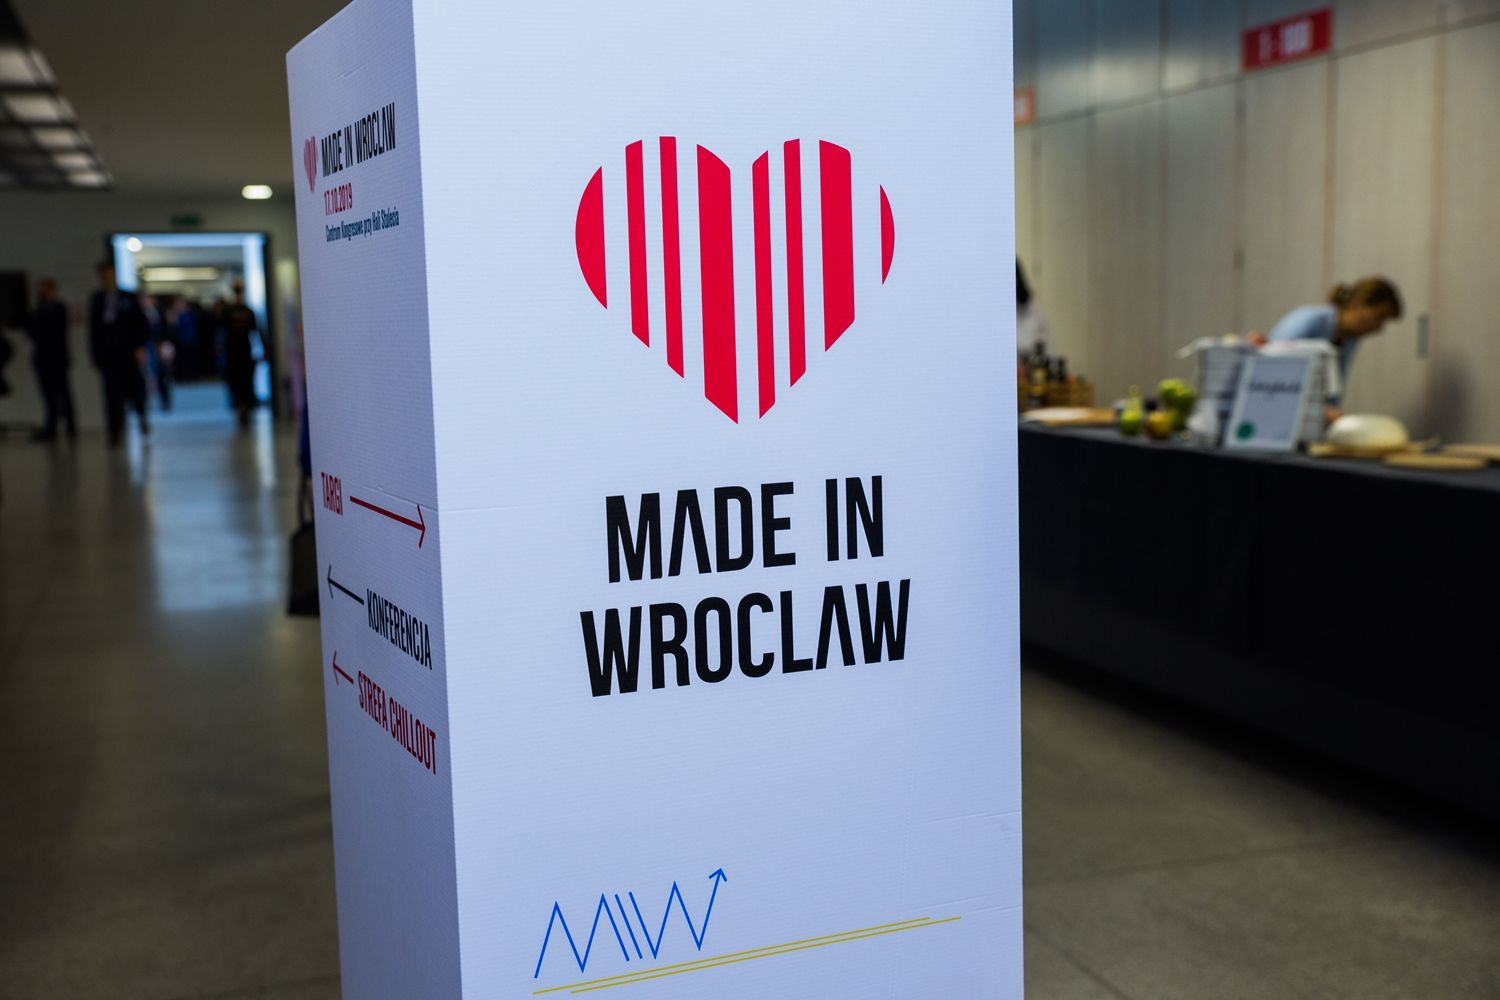 made in wroclaw